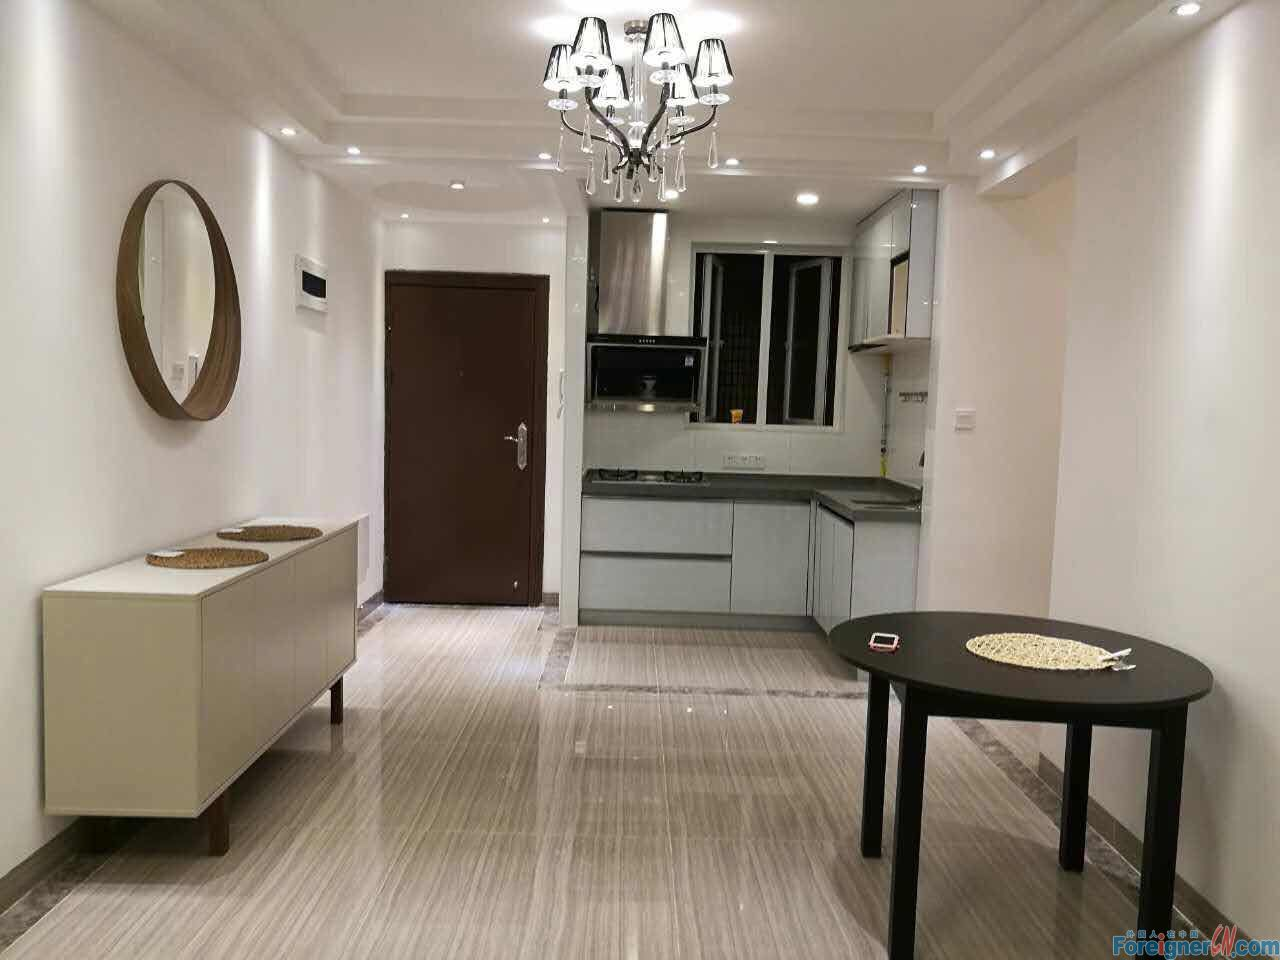 Brand new apartment.close to coco park and convention center.